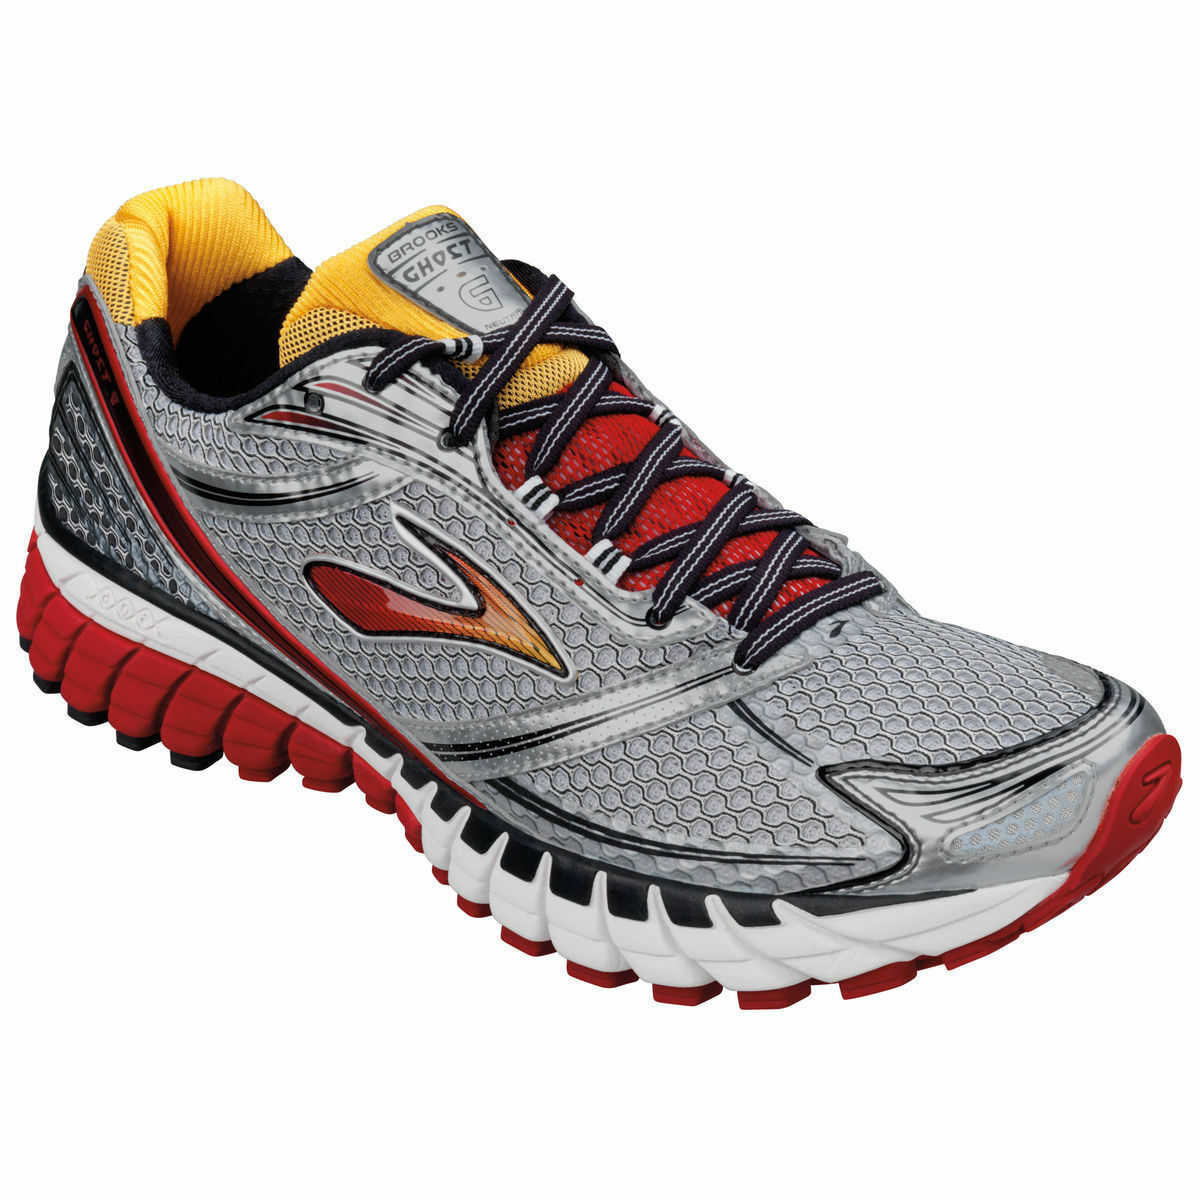 Brooks Ghost 6 Mens Running Shoes (B) (384)  200.00 + Free Aus Delivery